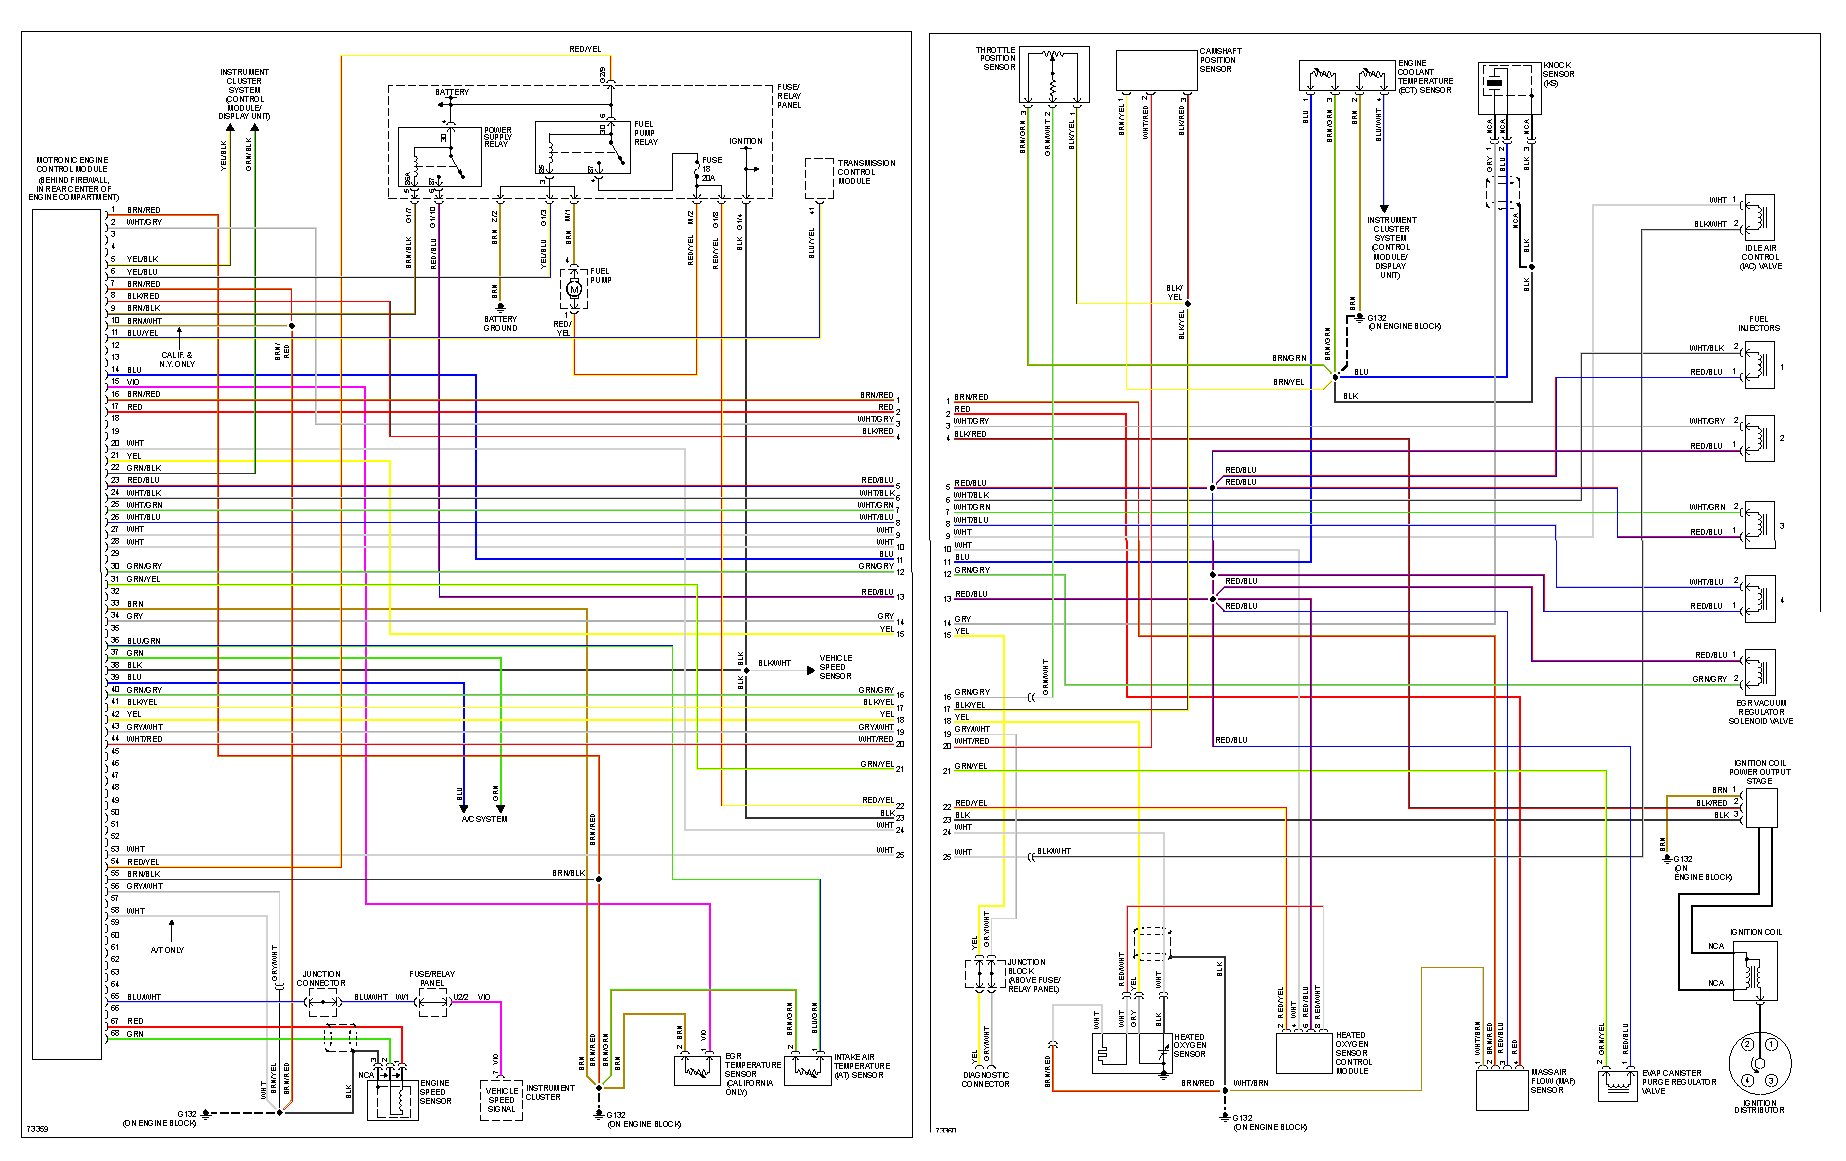 DIAGRAM] Audi A3 1 9 Tdi Wiring Diagram FULL Version HD Quality Wiring  Diagram - CLOUDIAGRAM.MANIFESTOILETISIM.FRcloudiagram.manifestoiletisim.fr